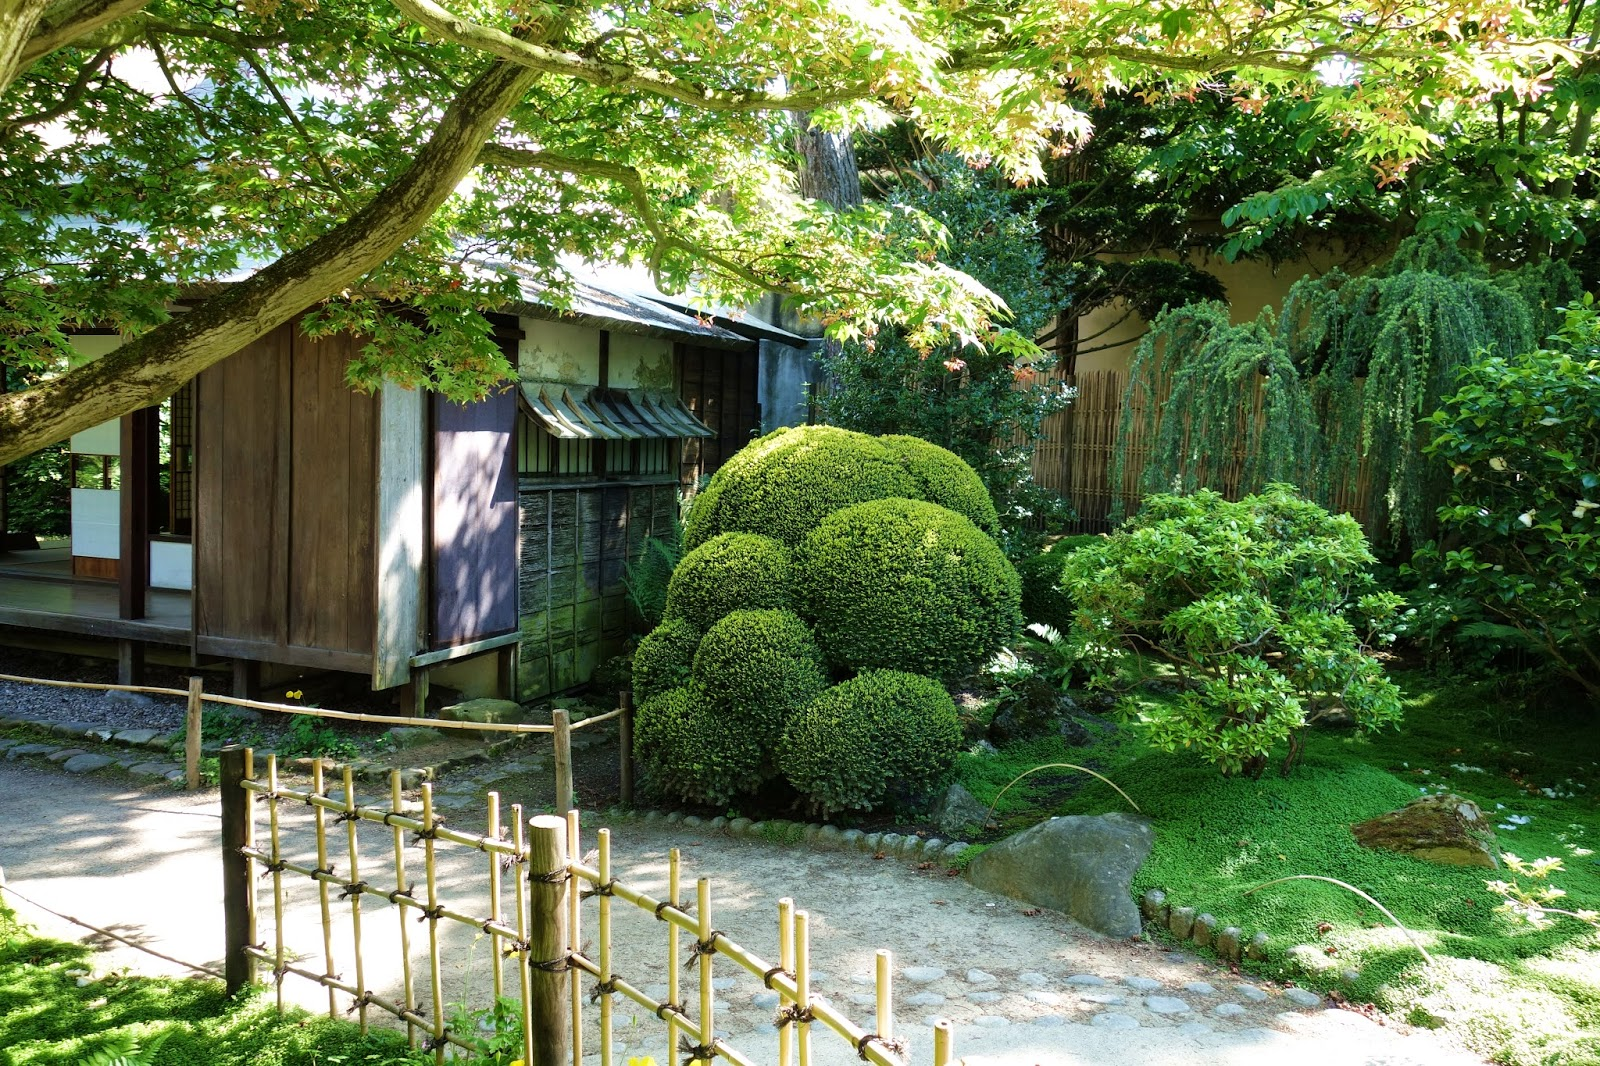 Paris village et jardin japonais au mus e albert kahn - Video bonsai jardin japonais ...